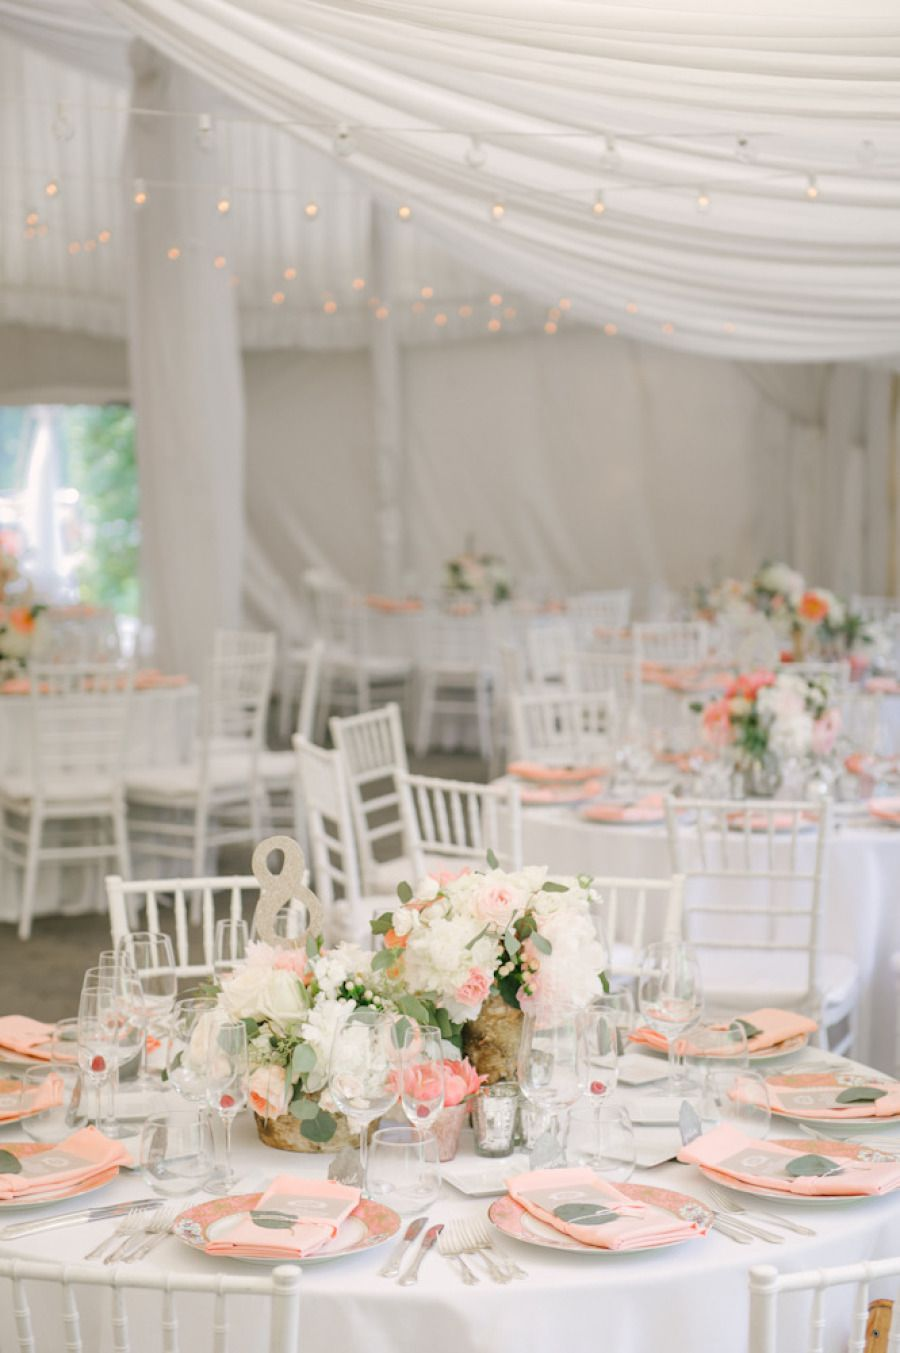 46 Wedding Reception Ideas To Wow Your Guests Pastel Wedding